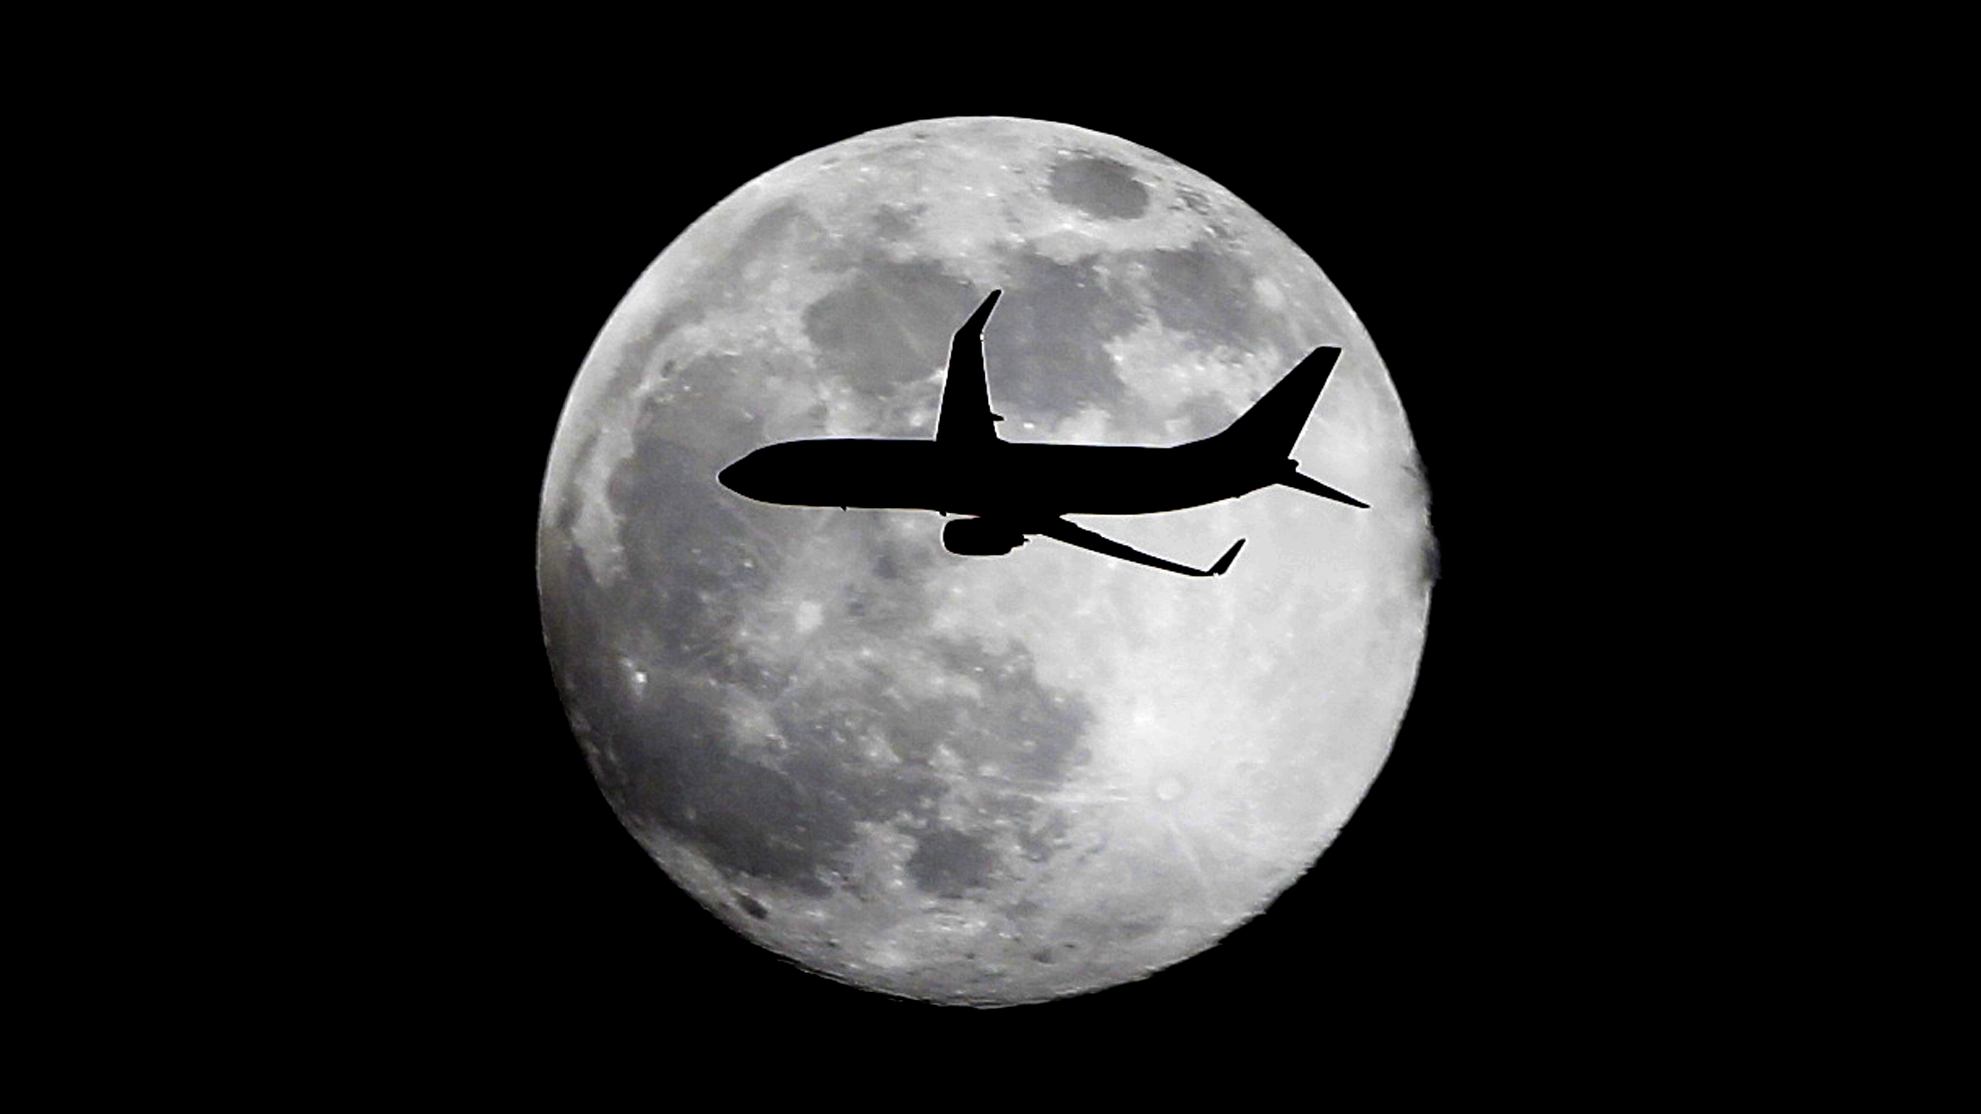 A jet plane leaving Miami International Airport flies in front of the moon, Saturday, June 22, 2013 above the skies in Surfside, Fla. The biggest and brightest full moon of the year graces the sky early Sunday as our celestial neighbor swings closer to Earth than usual when the moon will come within 222,000 miles of Earth and turn full around 7:30 a.m. EDT. (AP Photo/Wilfredo Lee)